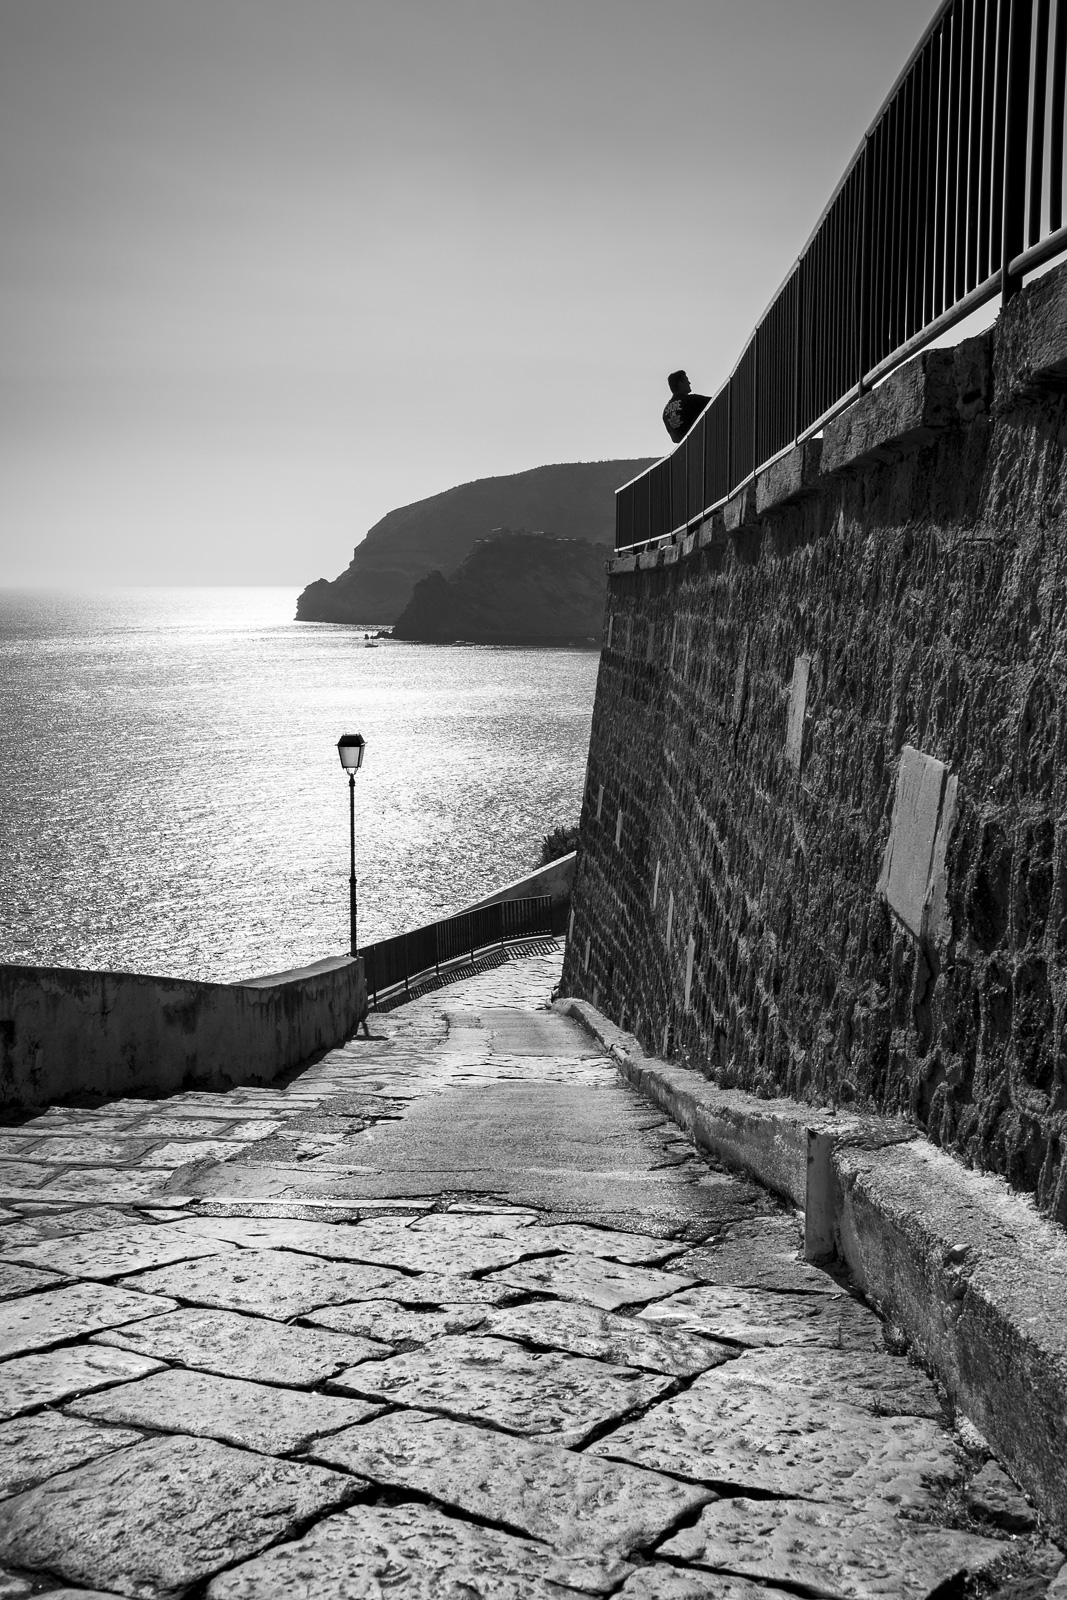 Man by railings above narrow flag stone street on hillside with street lamp silhouetted by sunlight reflected on sea in background Provinciale Succhivo Sant'Angelo, Sant'Angelo Italy black and white monochrome rustic street portrait composition © P. Maton 2018 eyeteeth.net